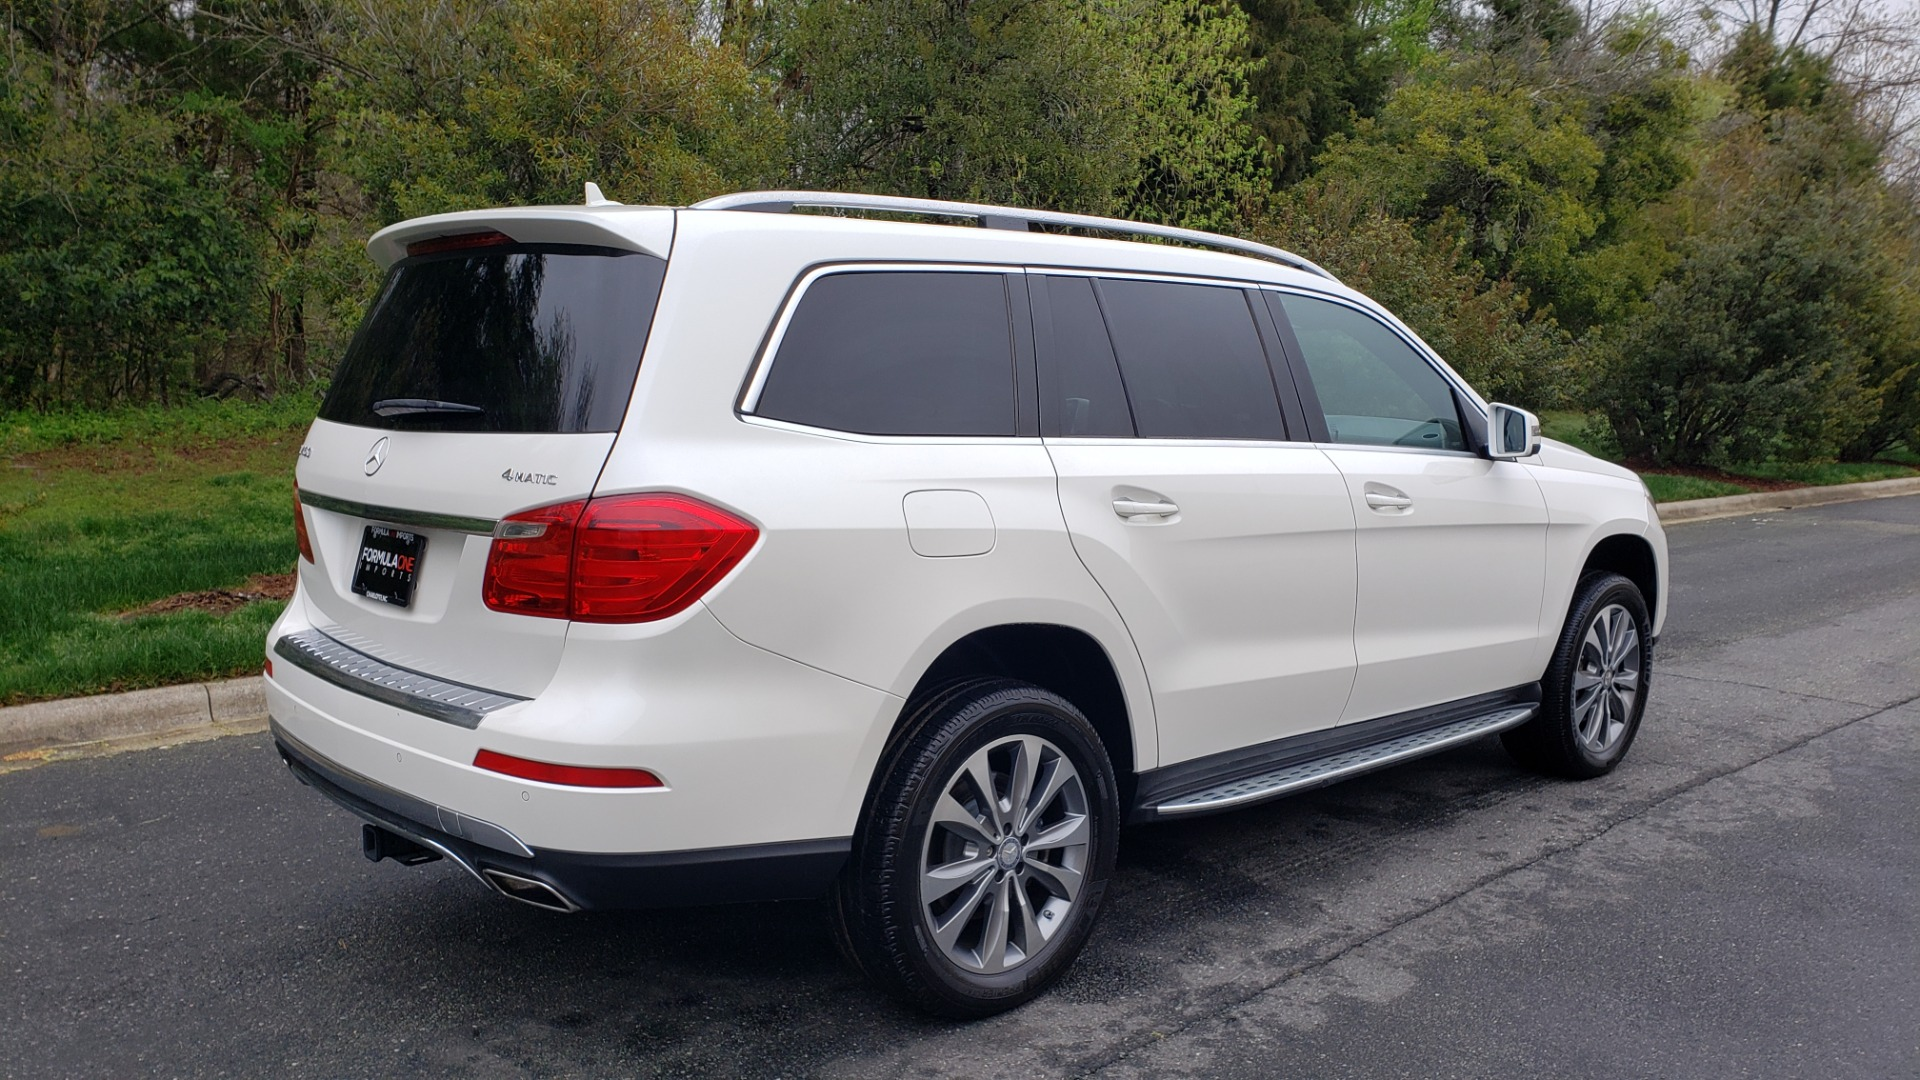 Used 2015 Mercedes-Benz GL-Class GL 450 4MATIC PREMIUM / NAV / PANO-ROOF / LANE TRACK / PARK ASST for sale Sold at Formula Imports in Charlotte NC 28227 6